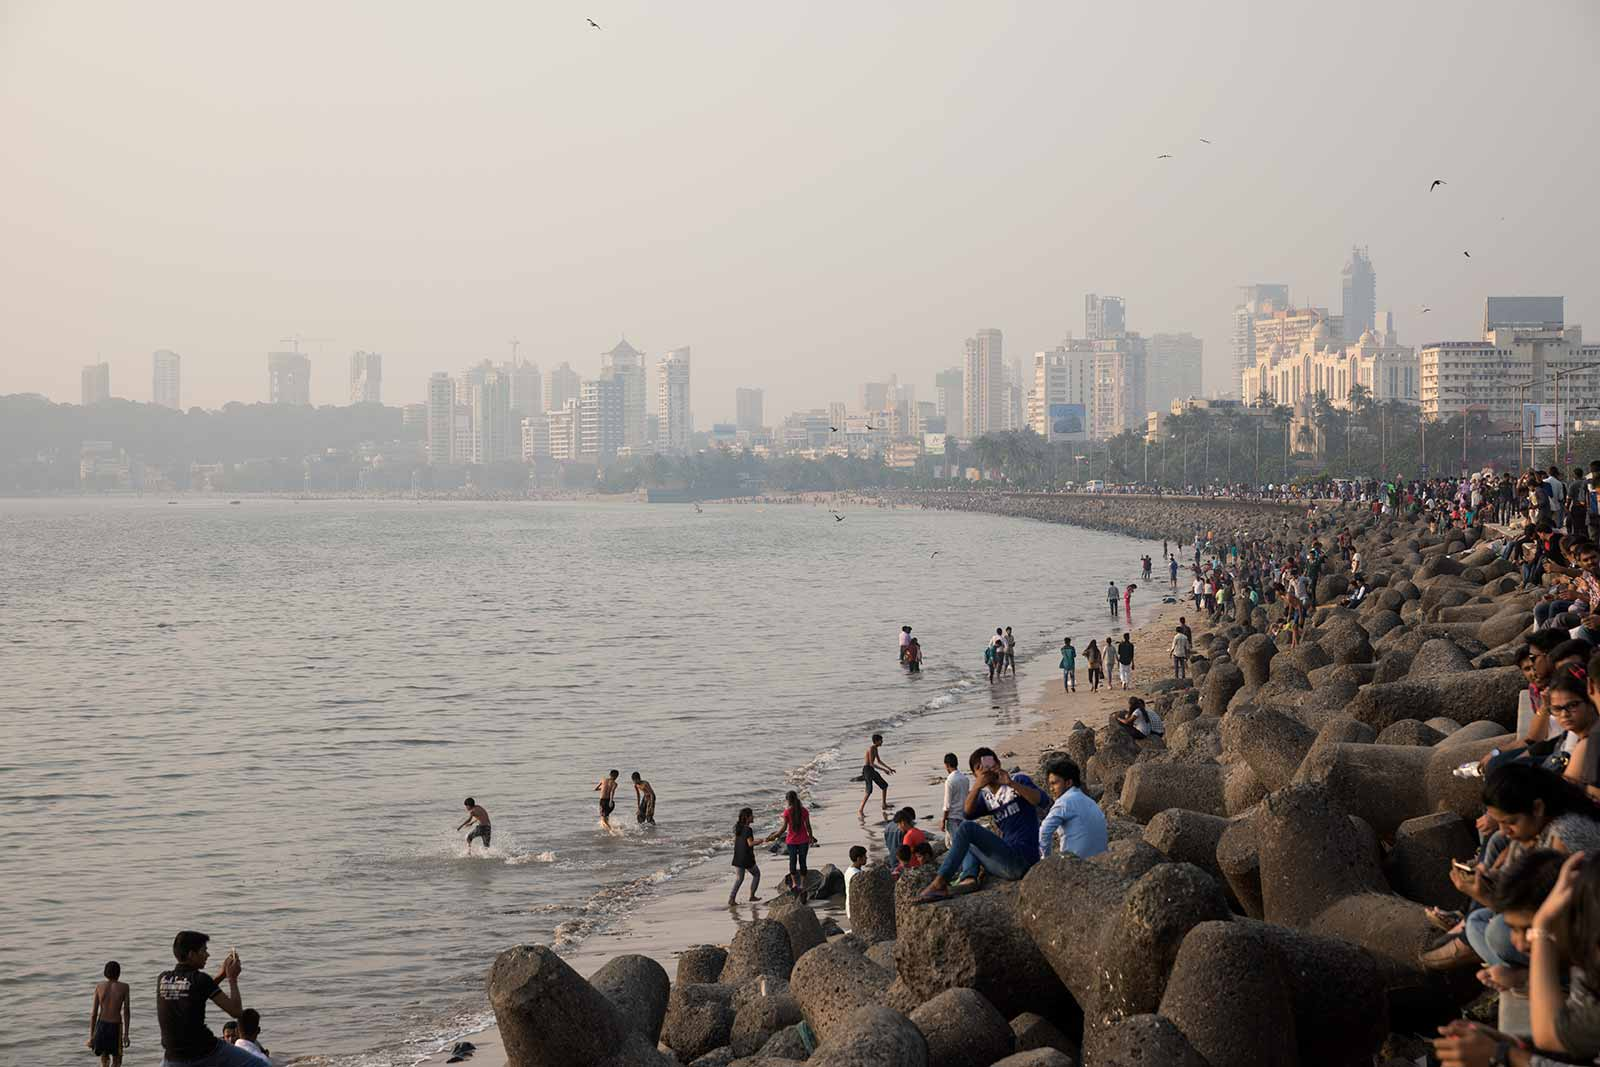 Marine Drive is a 3.6-kilometre-long boulevard in South Mumbai in the city of Mumbai. The road was constructed by late philanthropist Bhagojisheth Keer & Pallonji Mistry.